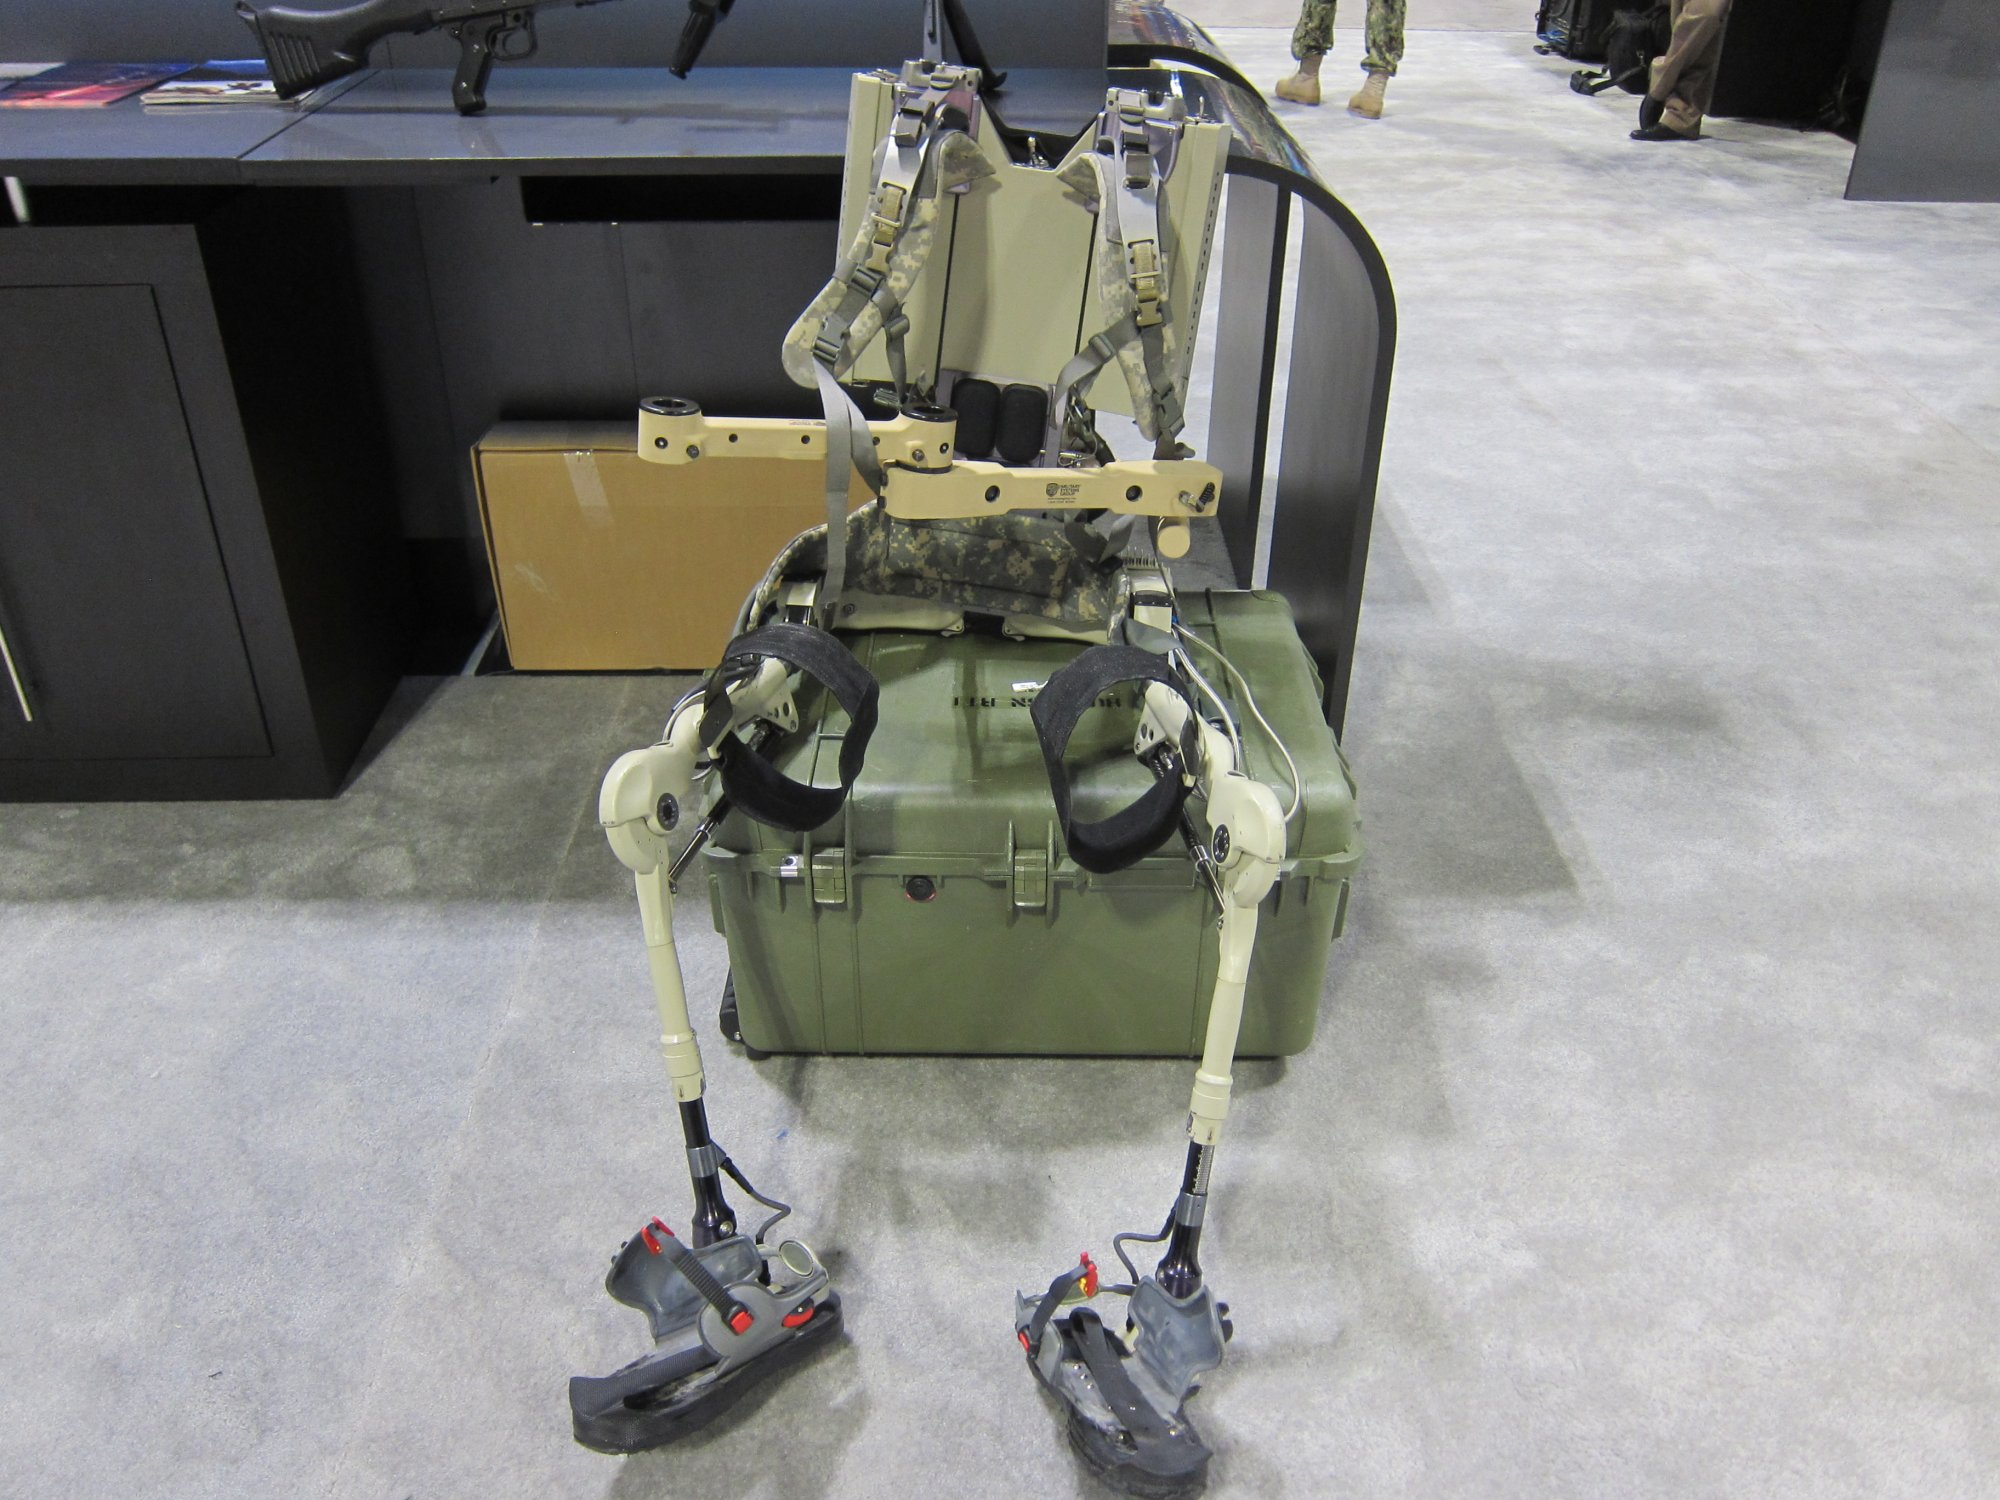 hulc human universal load carrier Lockheed martin began putting its improved next-generation design of the hulc™ advanced robotic exoskeleton thru laboratory test in case you haven't heard, the hulc (or human universal load carrier) is an untethered, battery-powered, hydraulic-actuated anthropomorphic exoskeleton capable of .